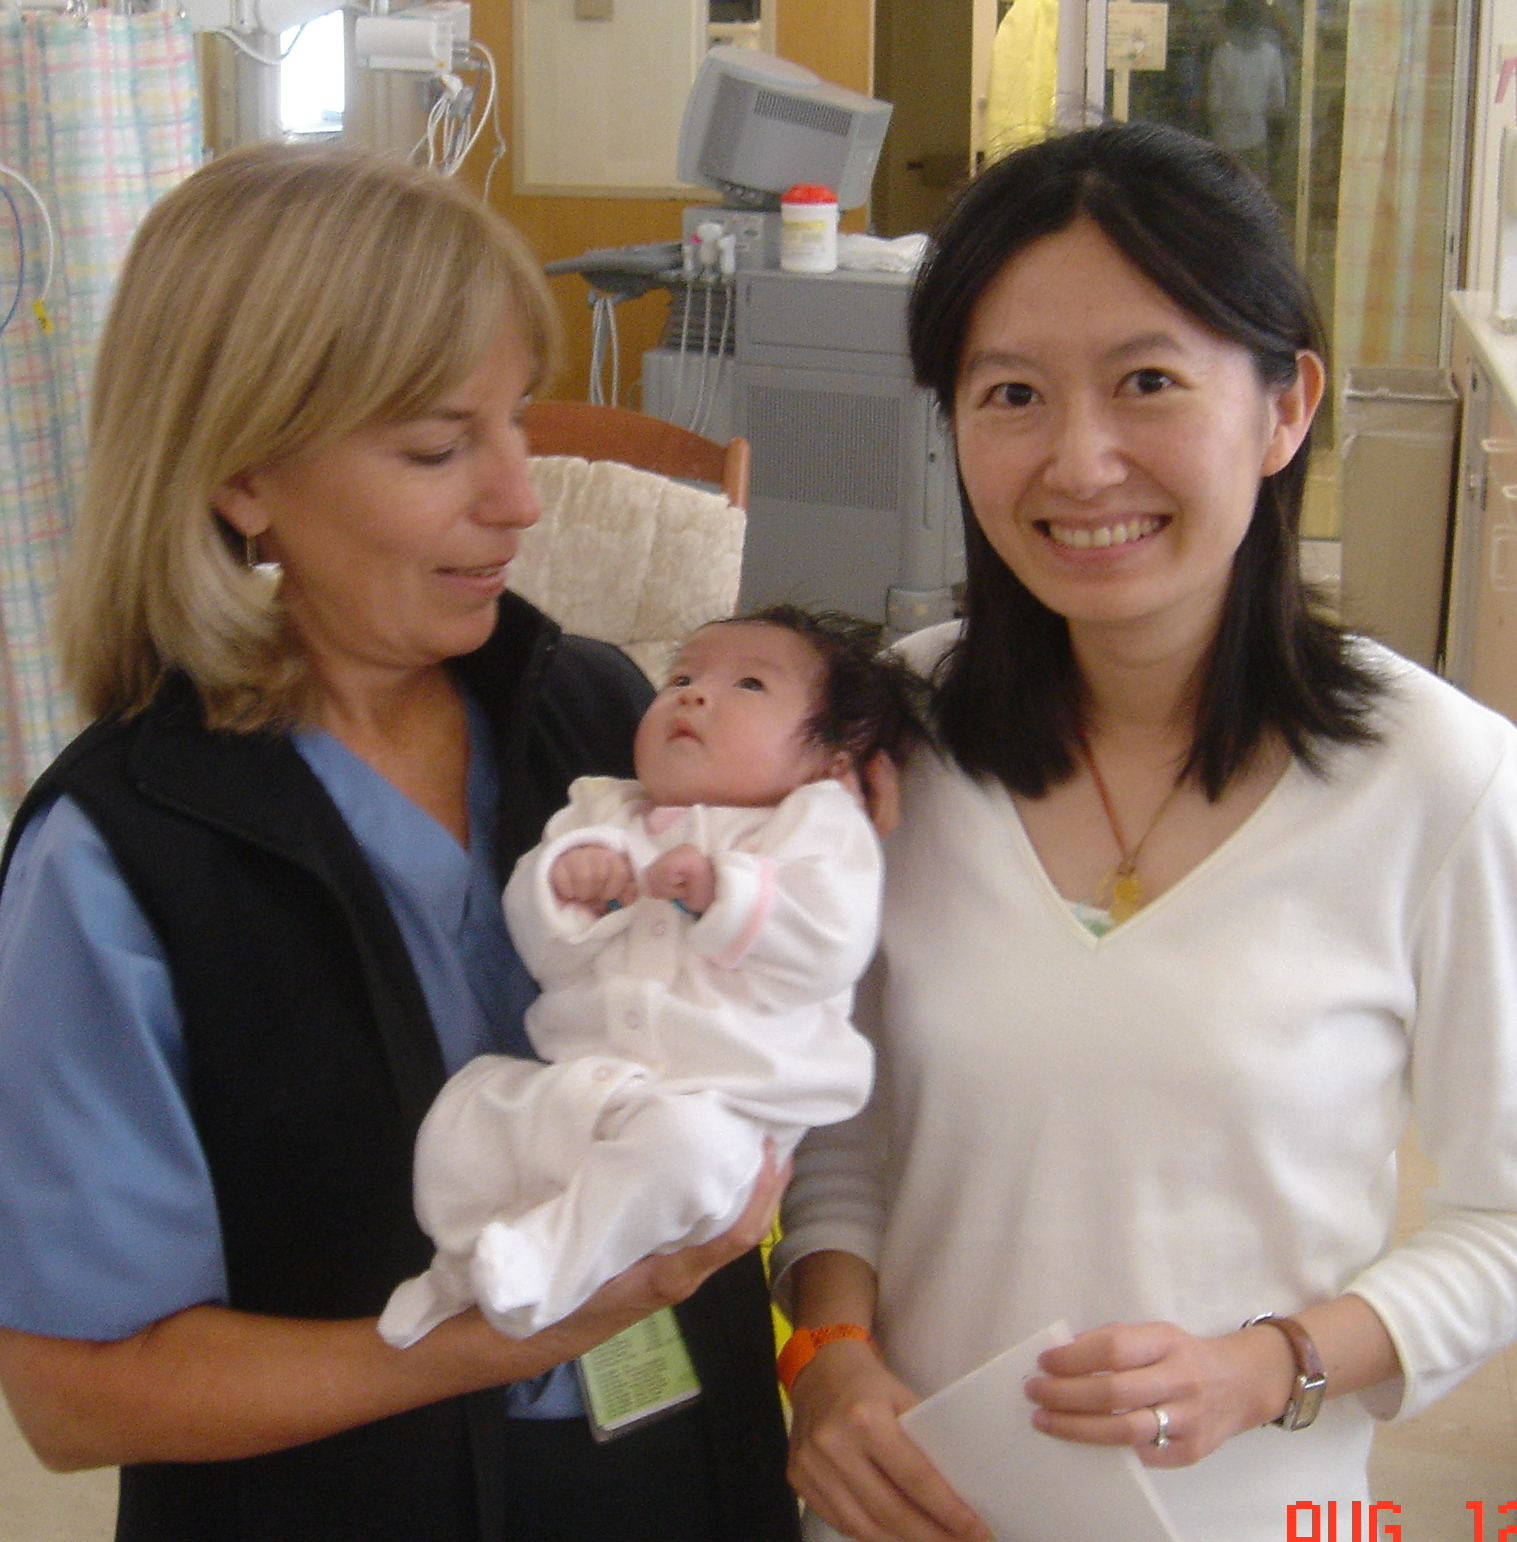 Harumi's primary nurses Tanya Walling and Pat Carter, were wonderful, along with her doctors.